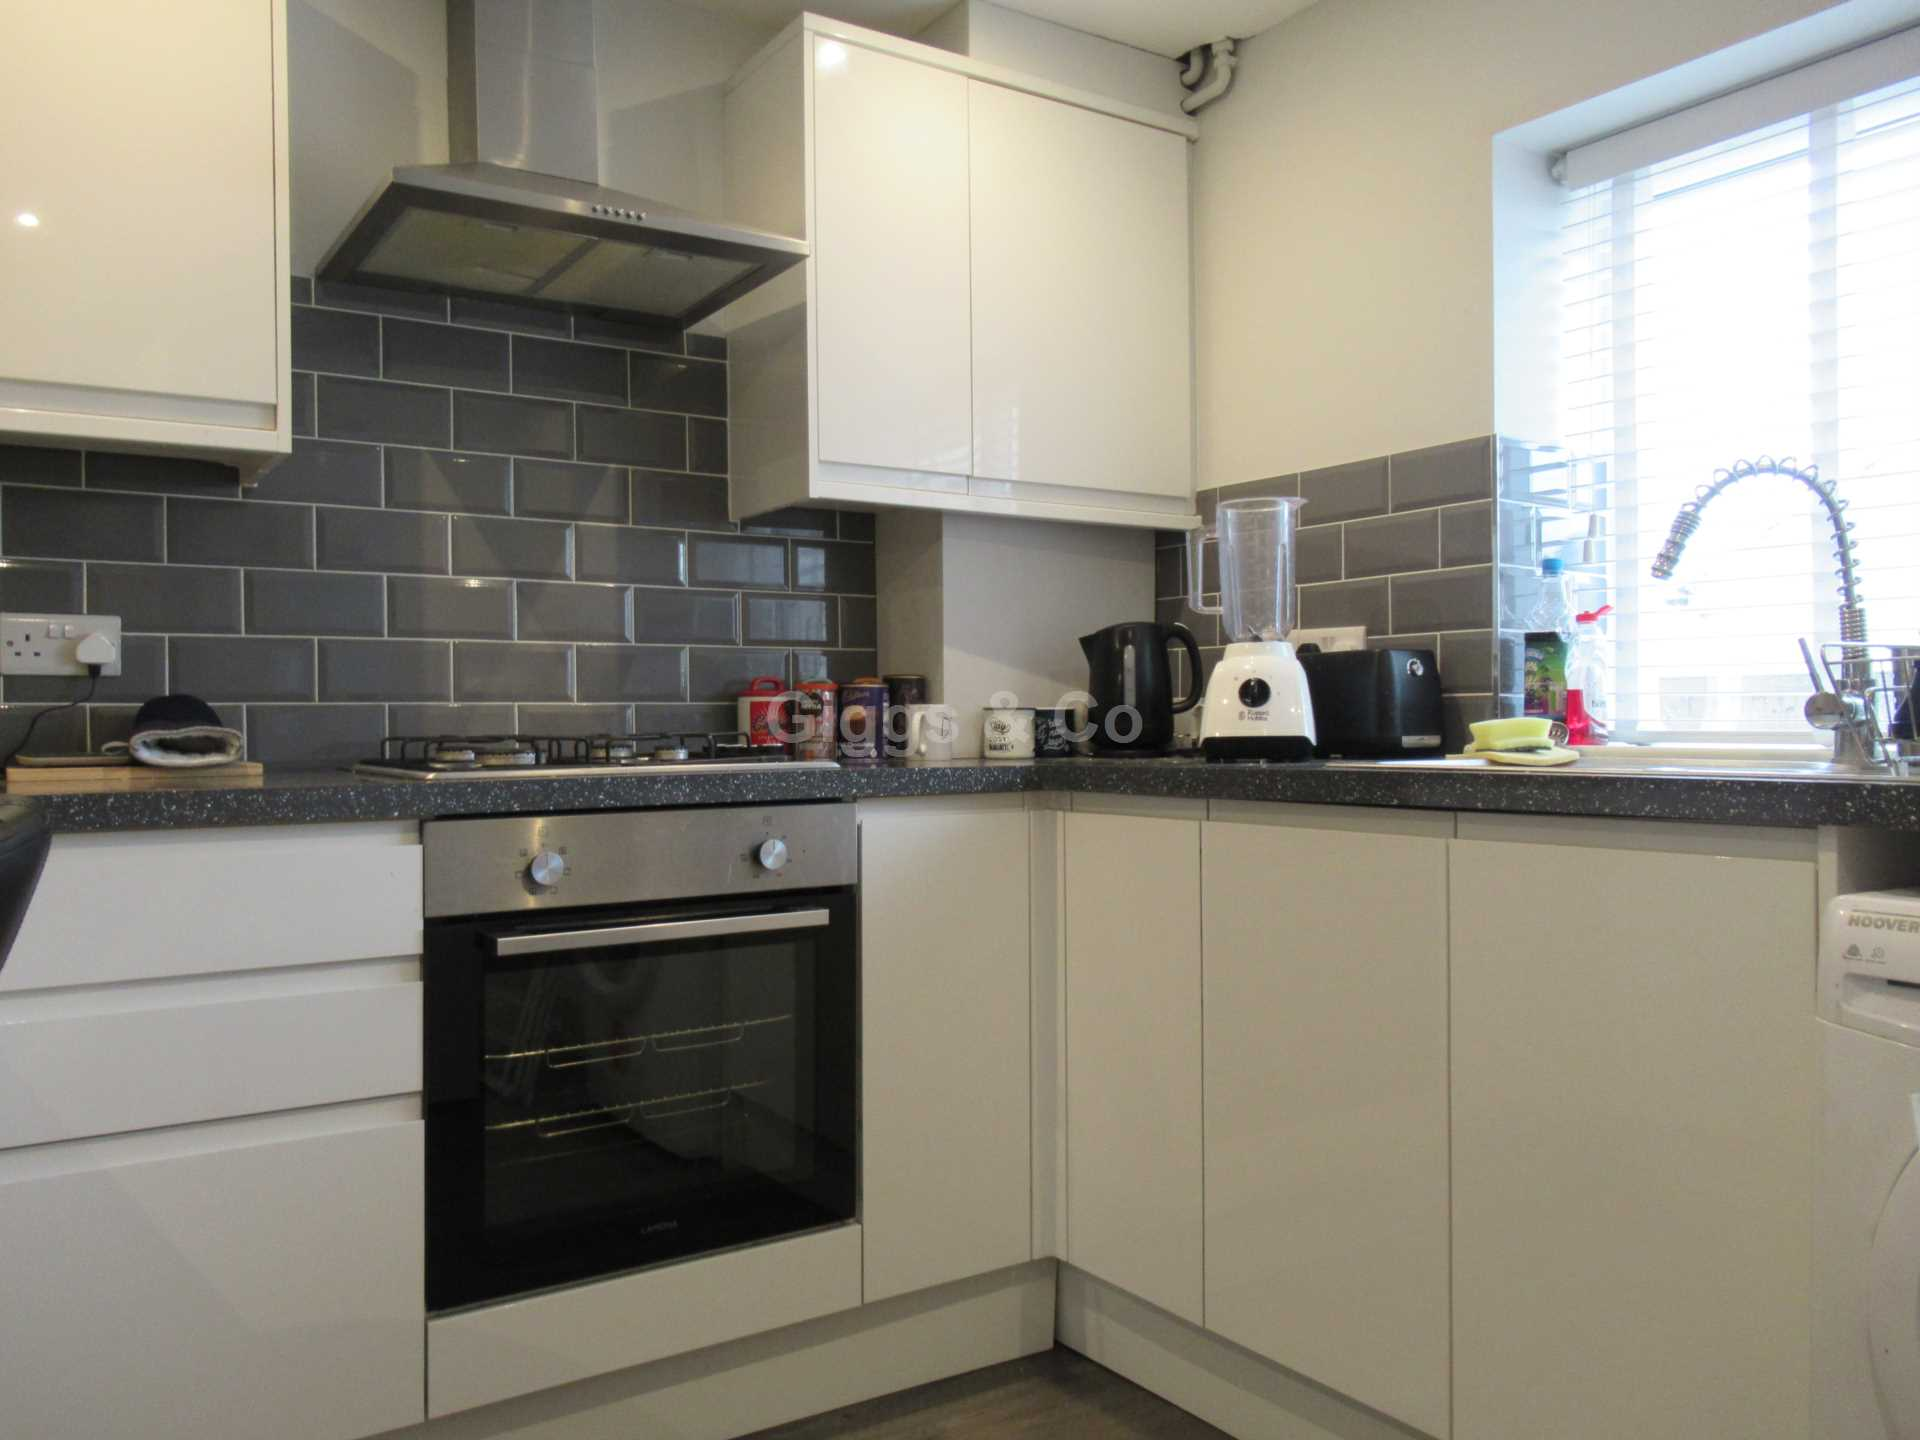 1 bed apartment to rent in Great North Road, Eaton Socon 1